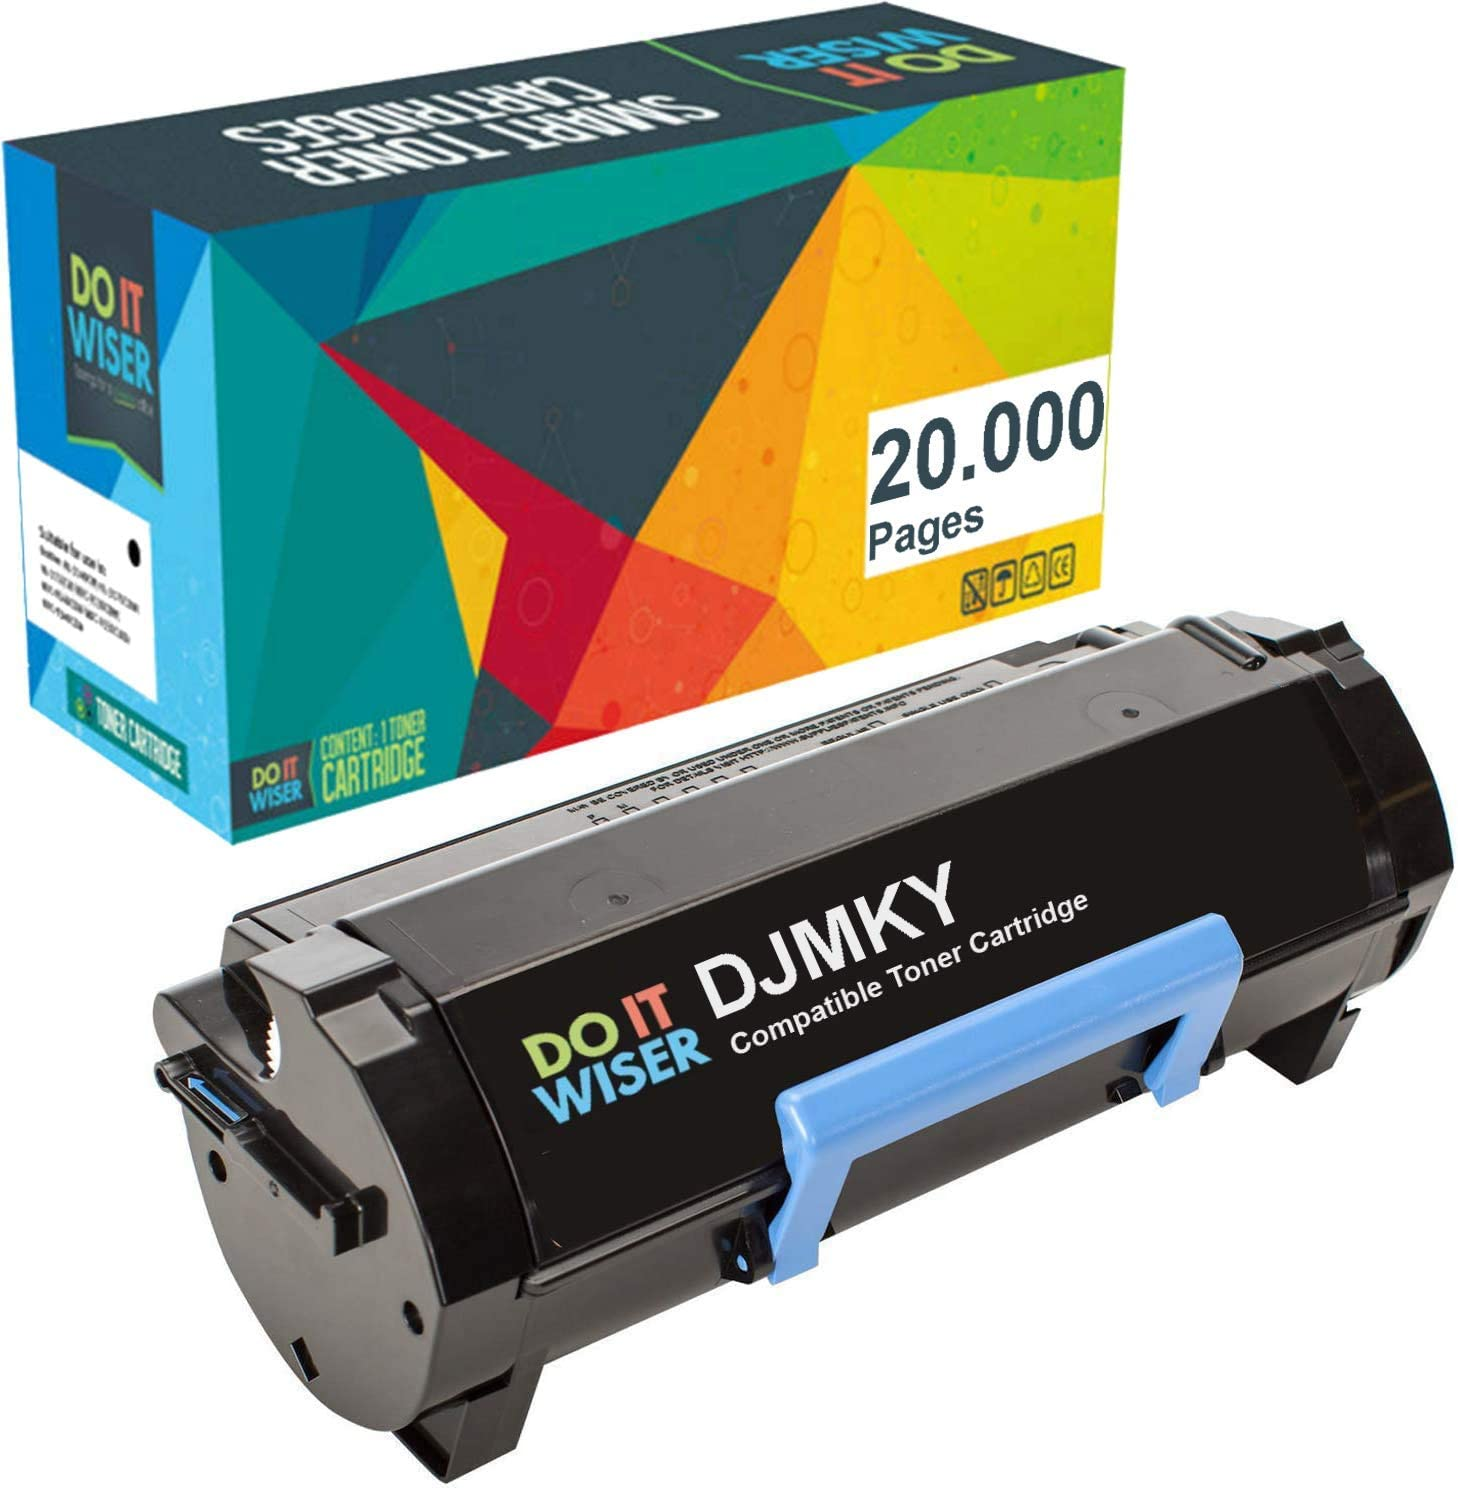 Do it Wiser Compatible Toner Cartridge Replacement for Dell DJMKY 9GG2G B3460dn B3465dn B3465dnf MFP Printers - 332-0373 (20,000 Pages Extra High Yield, Black)